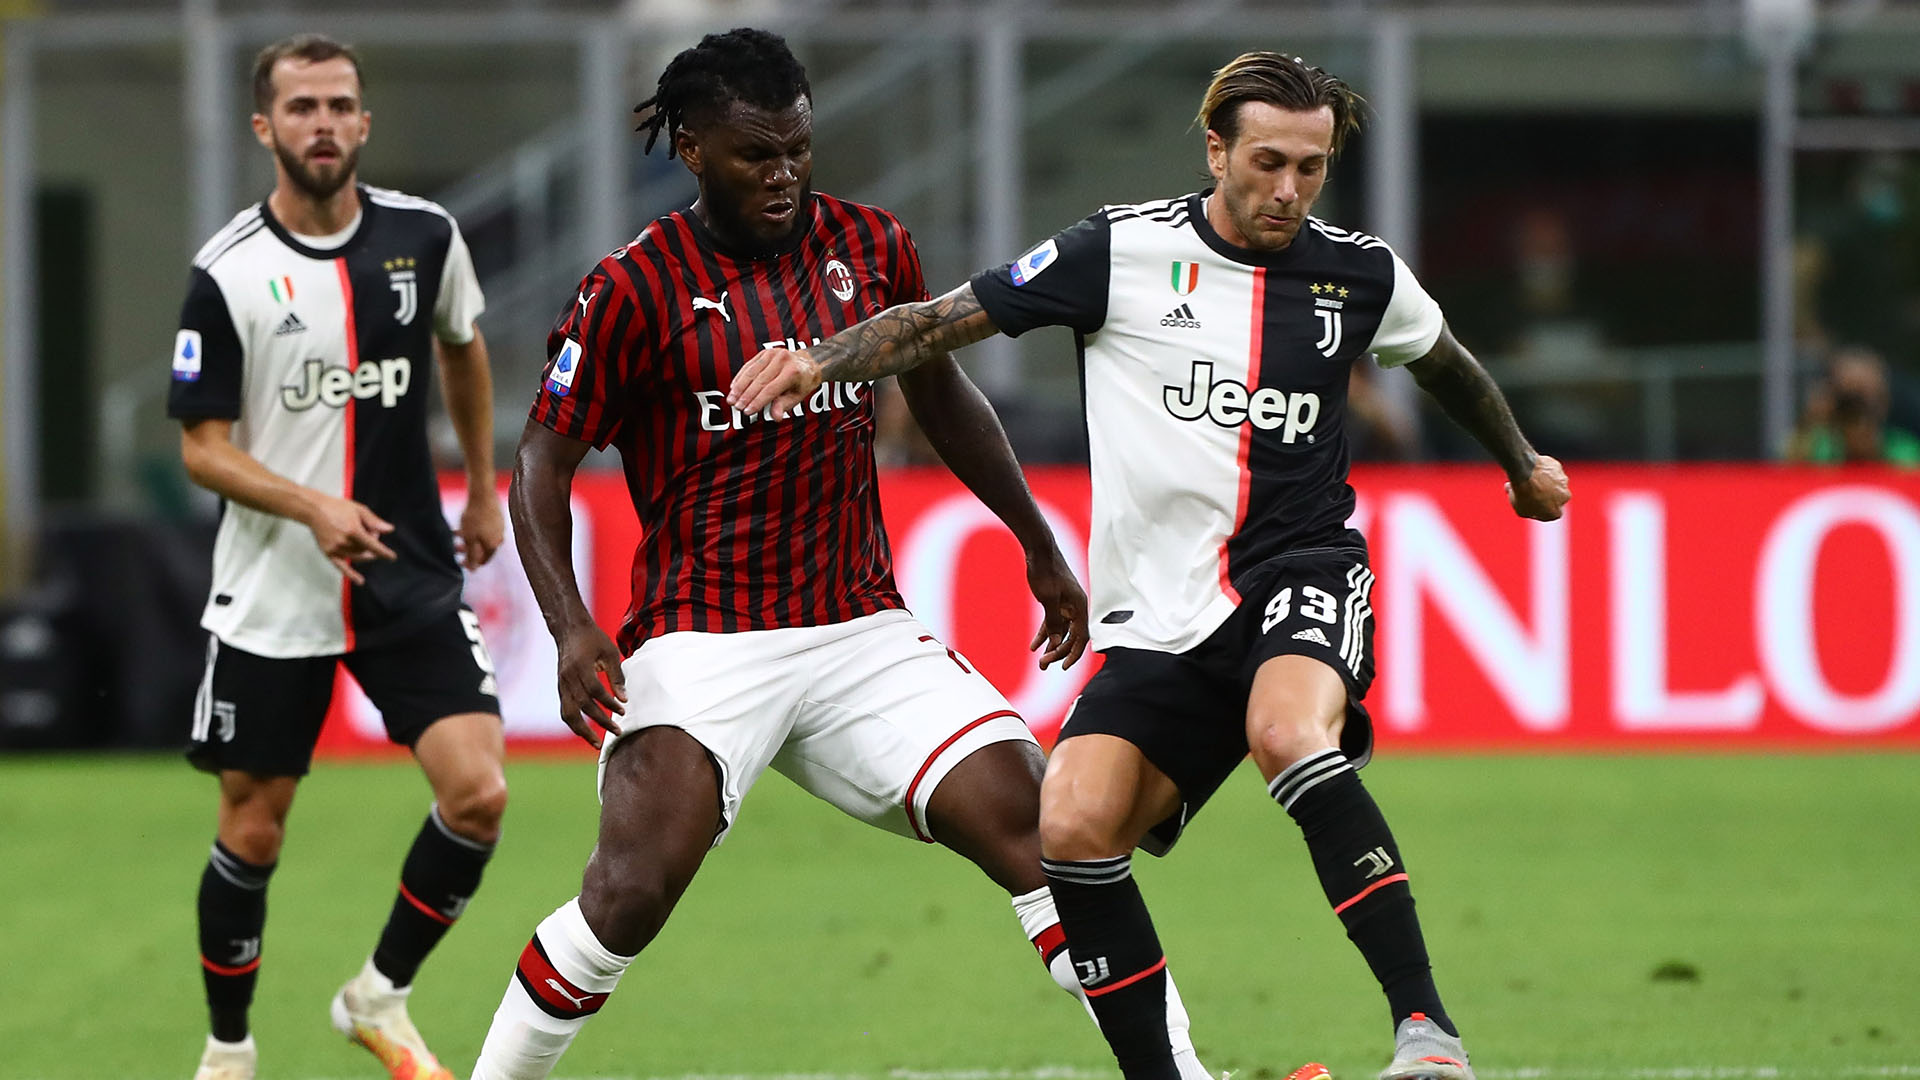 MILAN, ITALY - JULY 07:  Federico Bernardeschi (R) of Juventus FC competes for the ball with Franck Kessie (L) of AC Milan during the Serie A match between AC Milan and Juventus at Stadio Giuseppe Meazza on July 7, 2020 in Milan, Italy.  (Photo by Marco Luzzani/Getty Images)